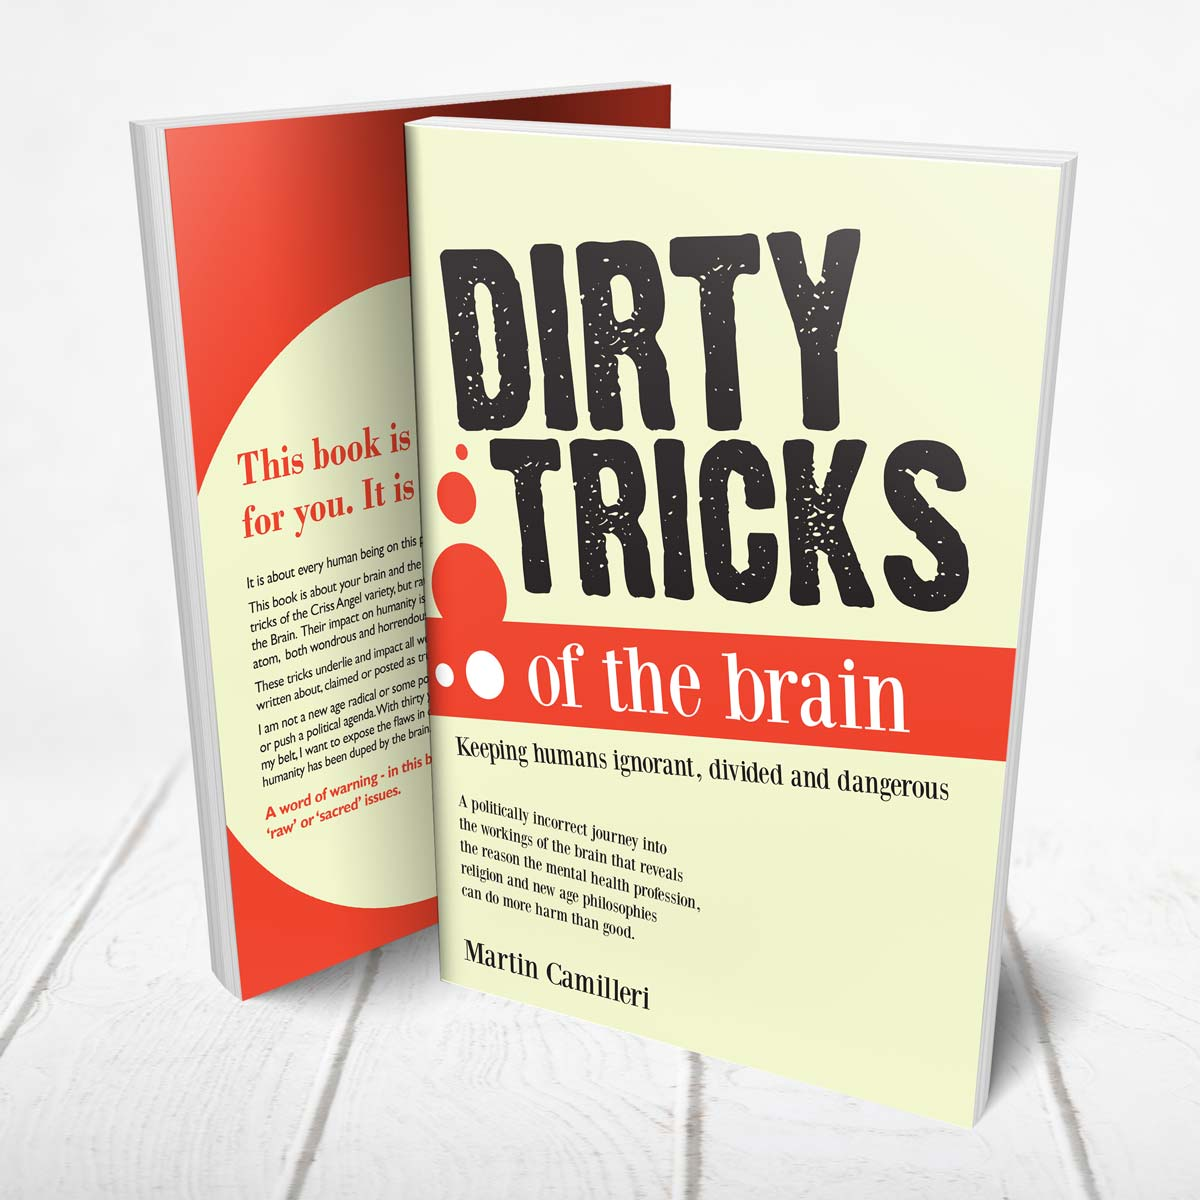 dirty tricks of the brain martin camilleri